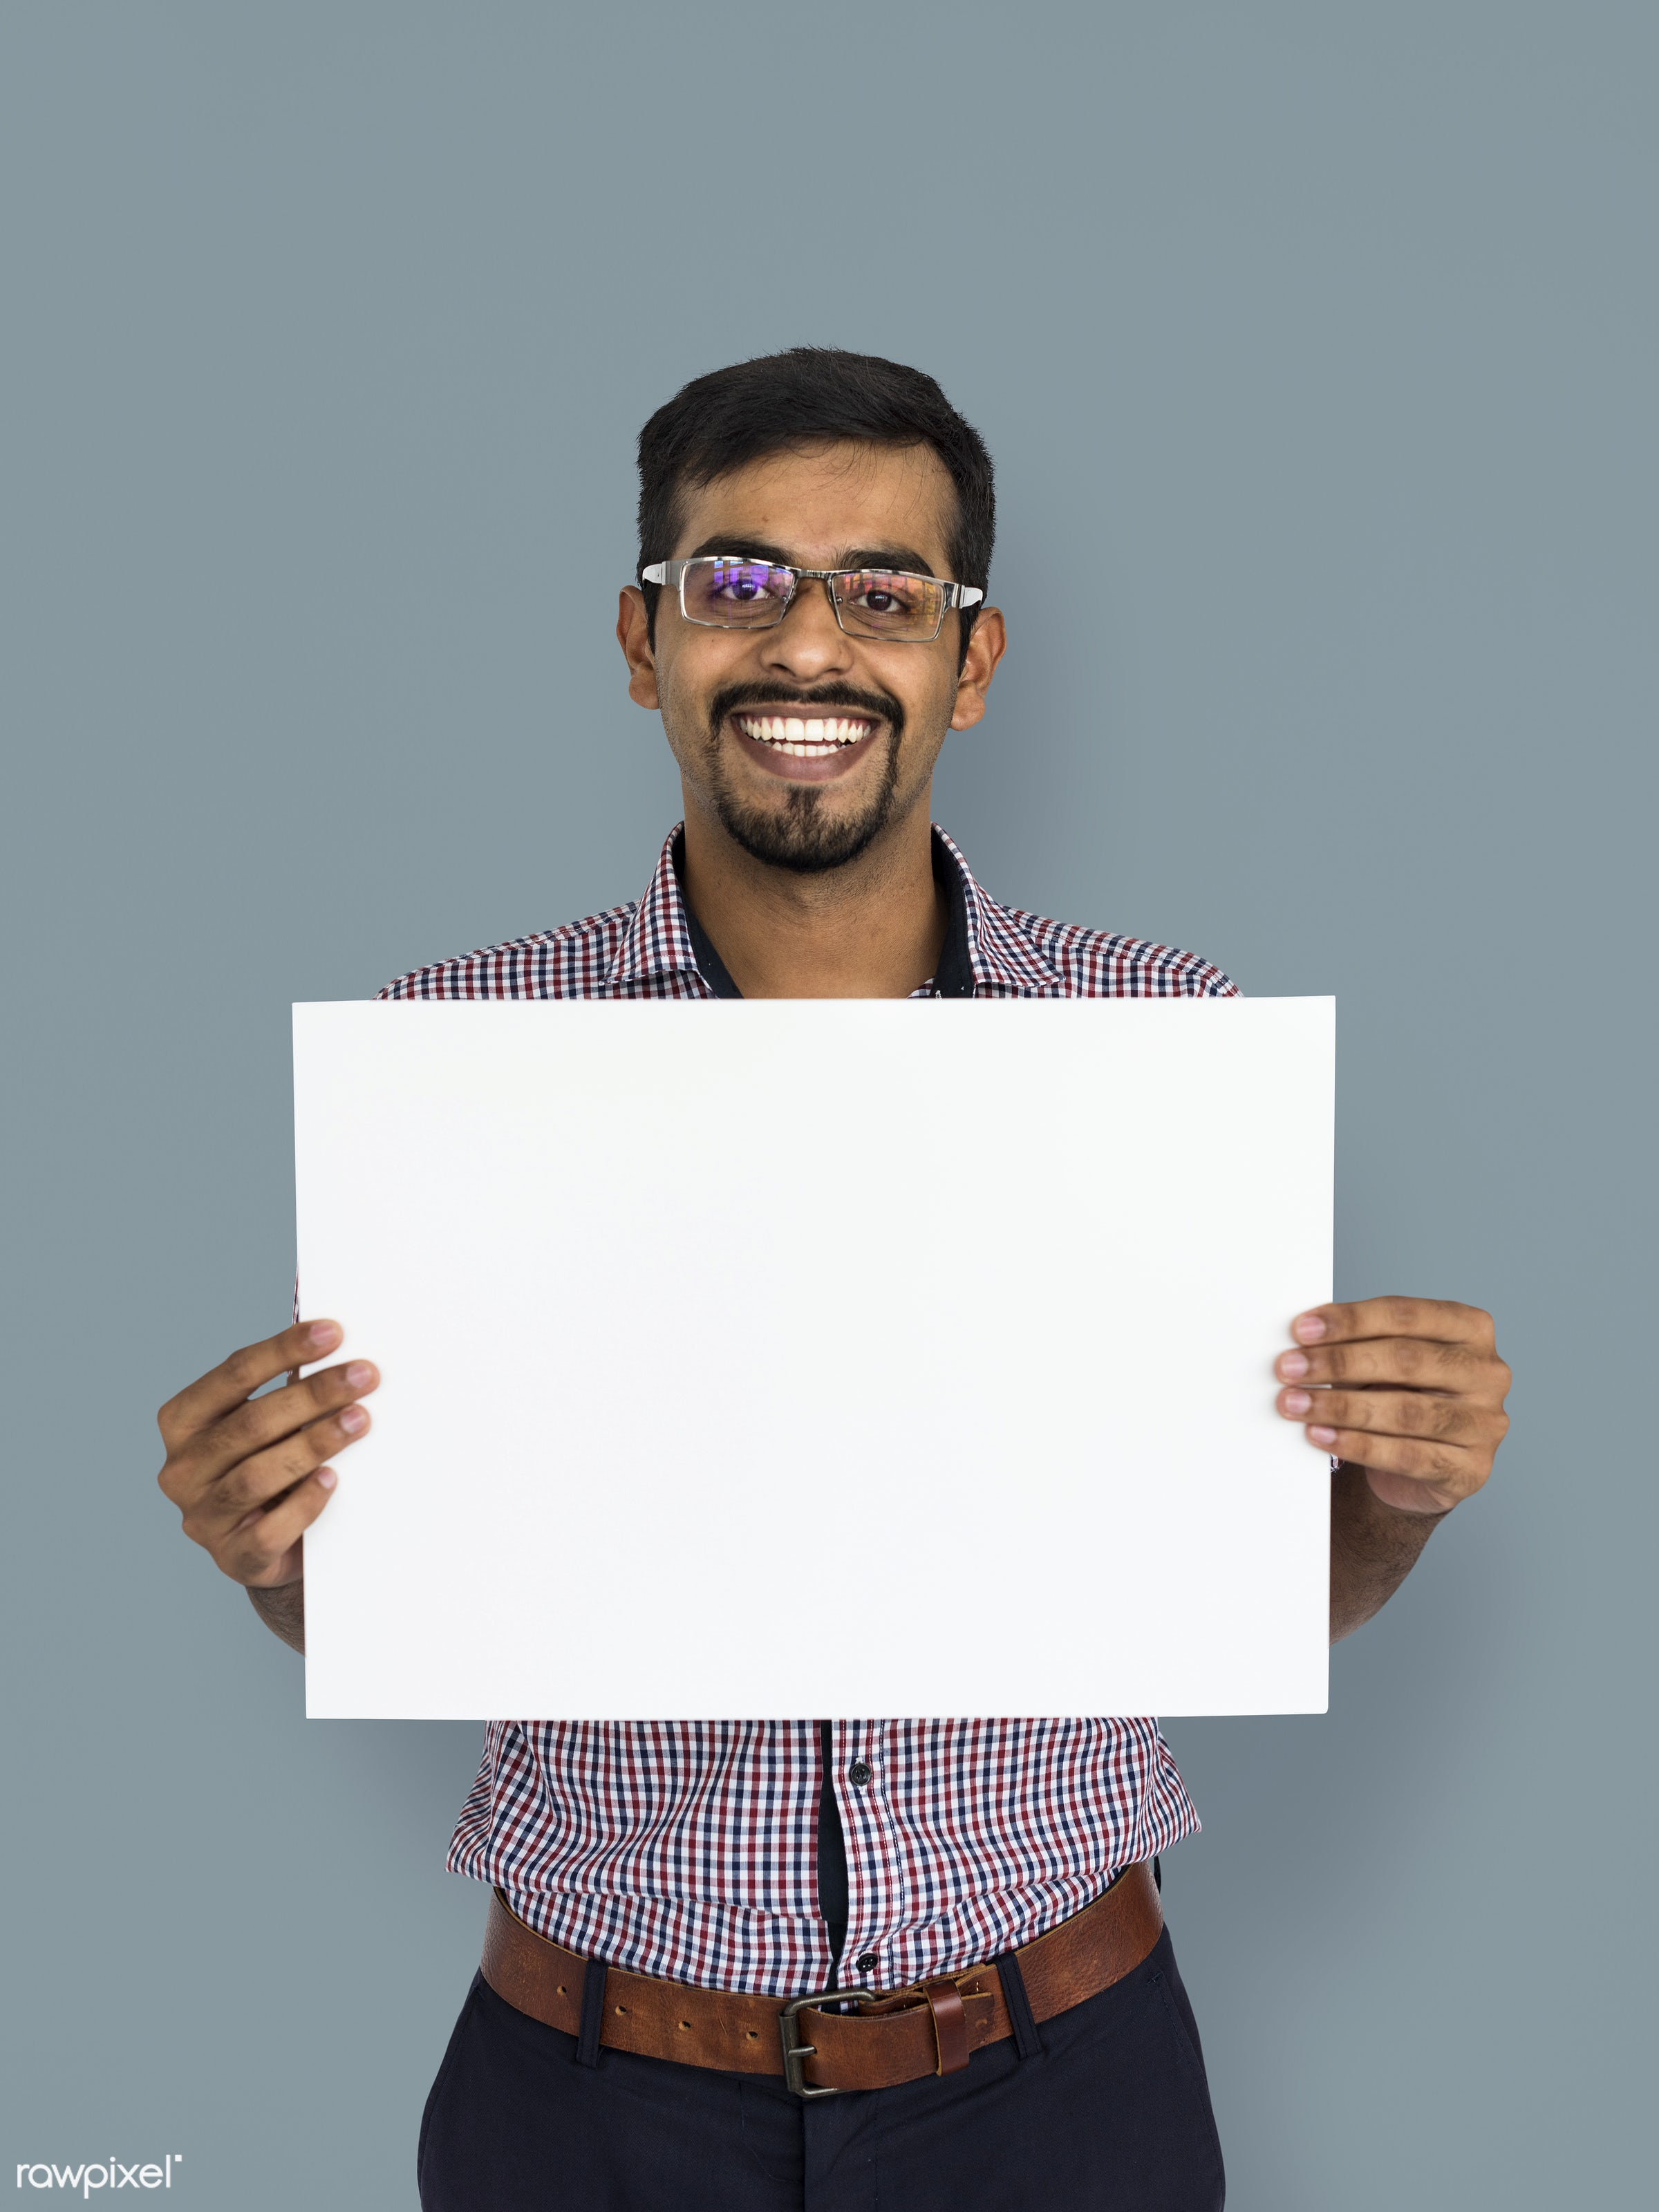 studio, expression, graphic, copy space, person, visual art, be creative, creativity, placard, beige, man, isolated,...